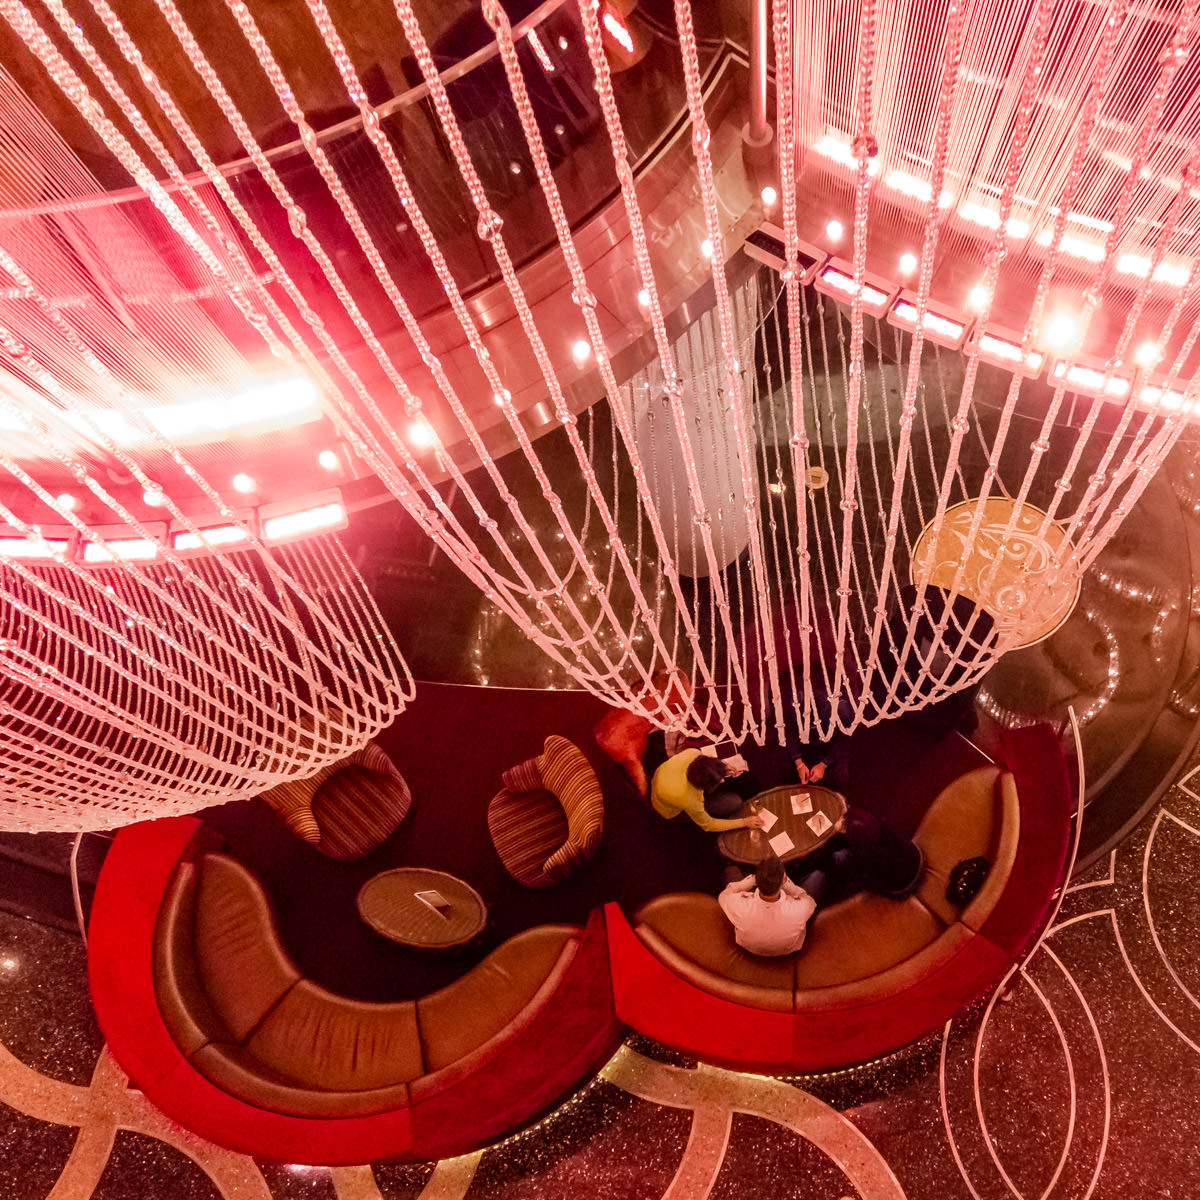 Patrons of The Chandelier Bar at the Cosmopolitan of Las Vegas enjoy drinks on the lowest level of the 65-foot-tall, 2 million crystal chandelier that contains and gives the bar its name.